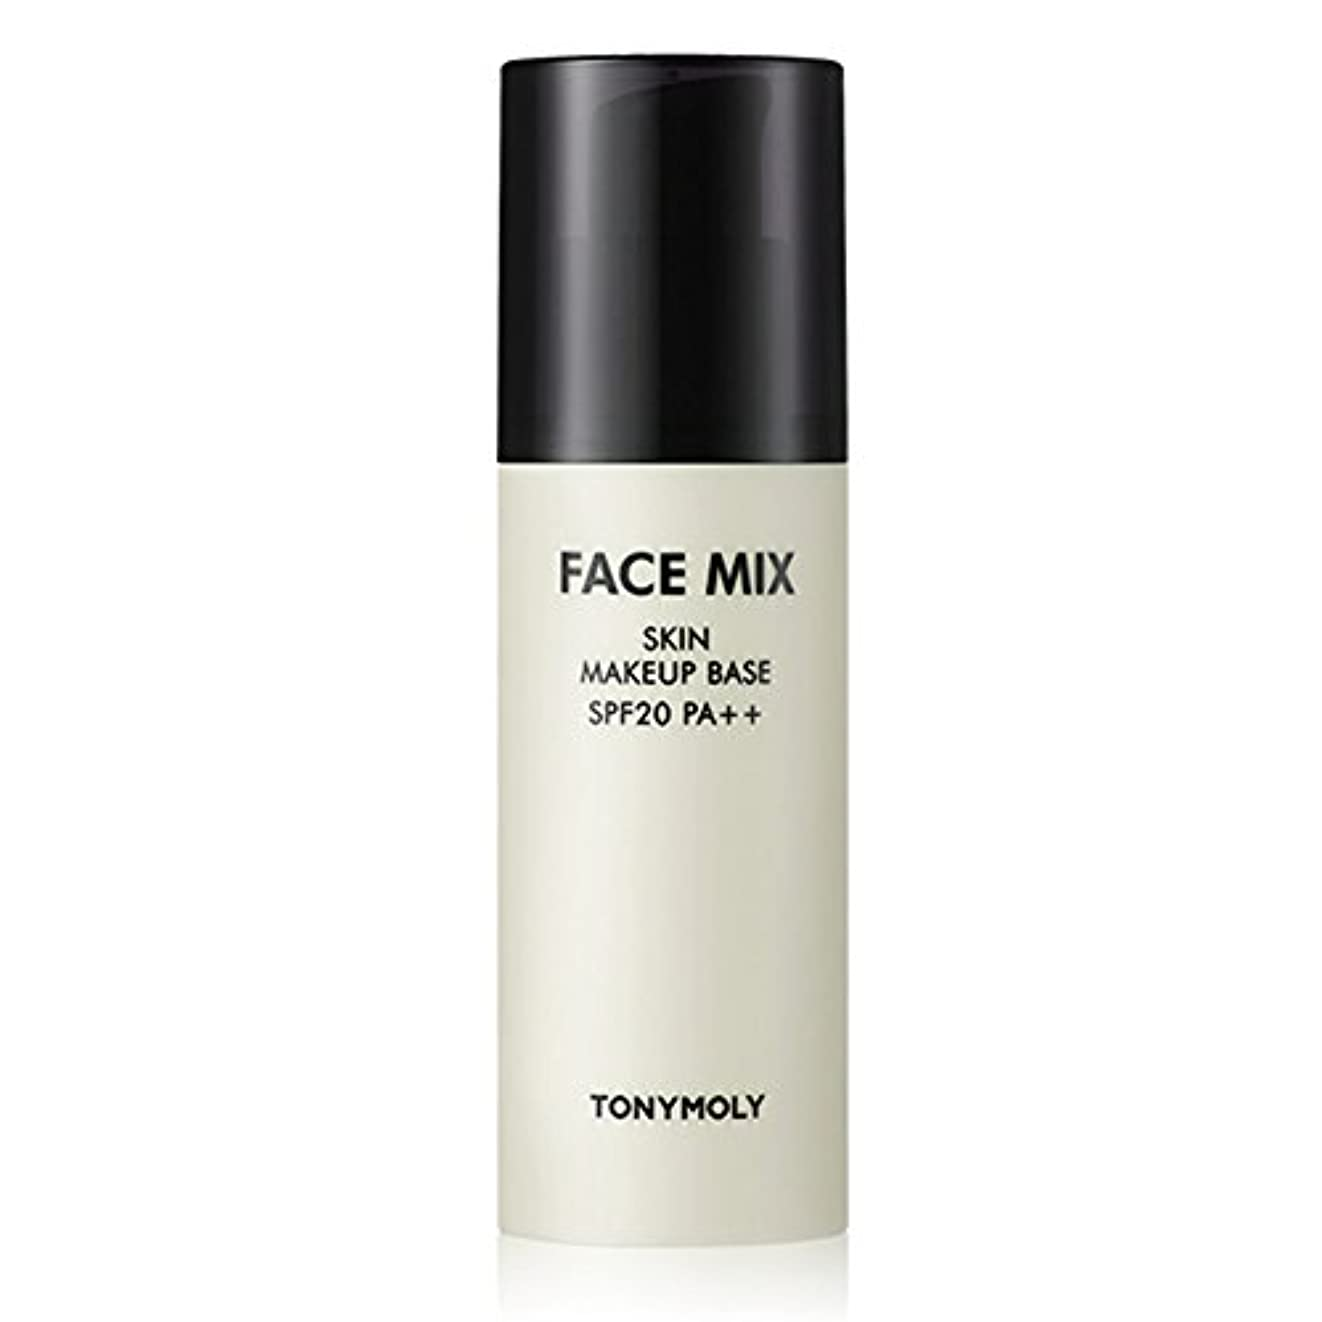 全体に感染するダイバーTONYMOLY FACE MIX SKIN MAKEUP BASE 02 MIX LAVENDER SPF20 PA+++ 30g